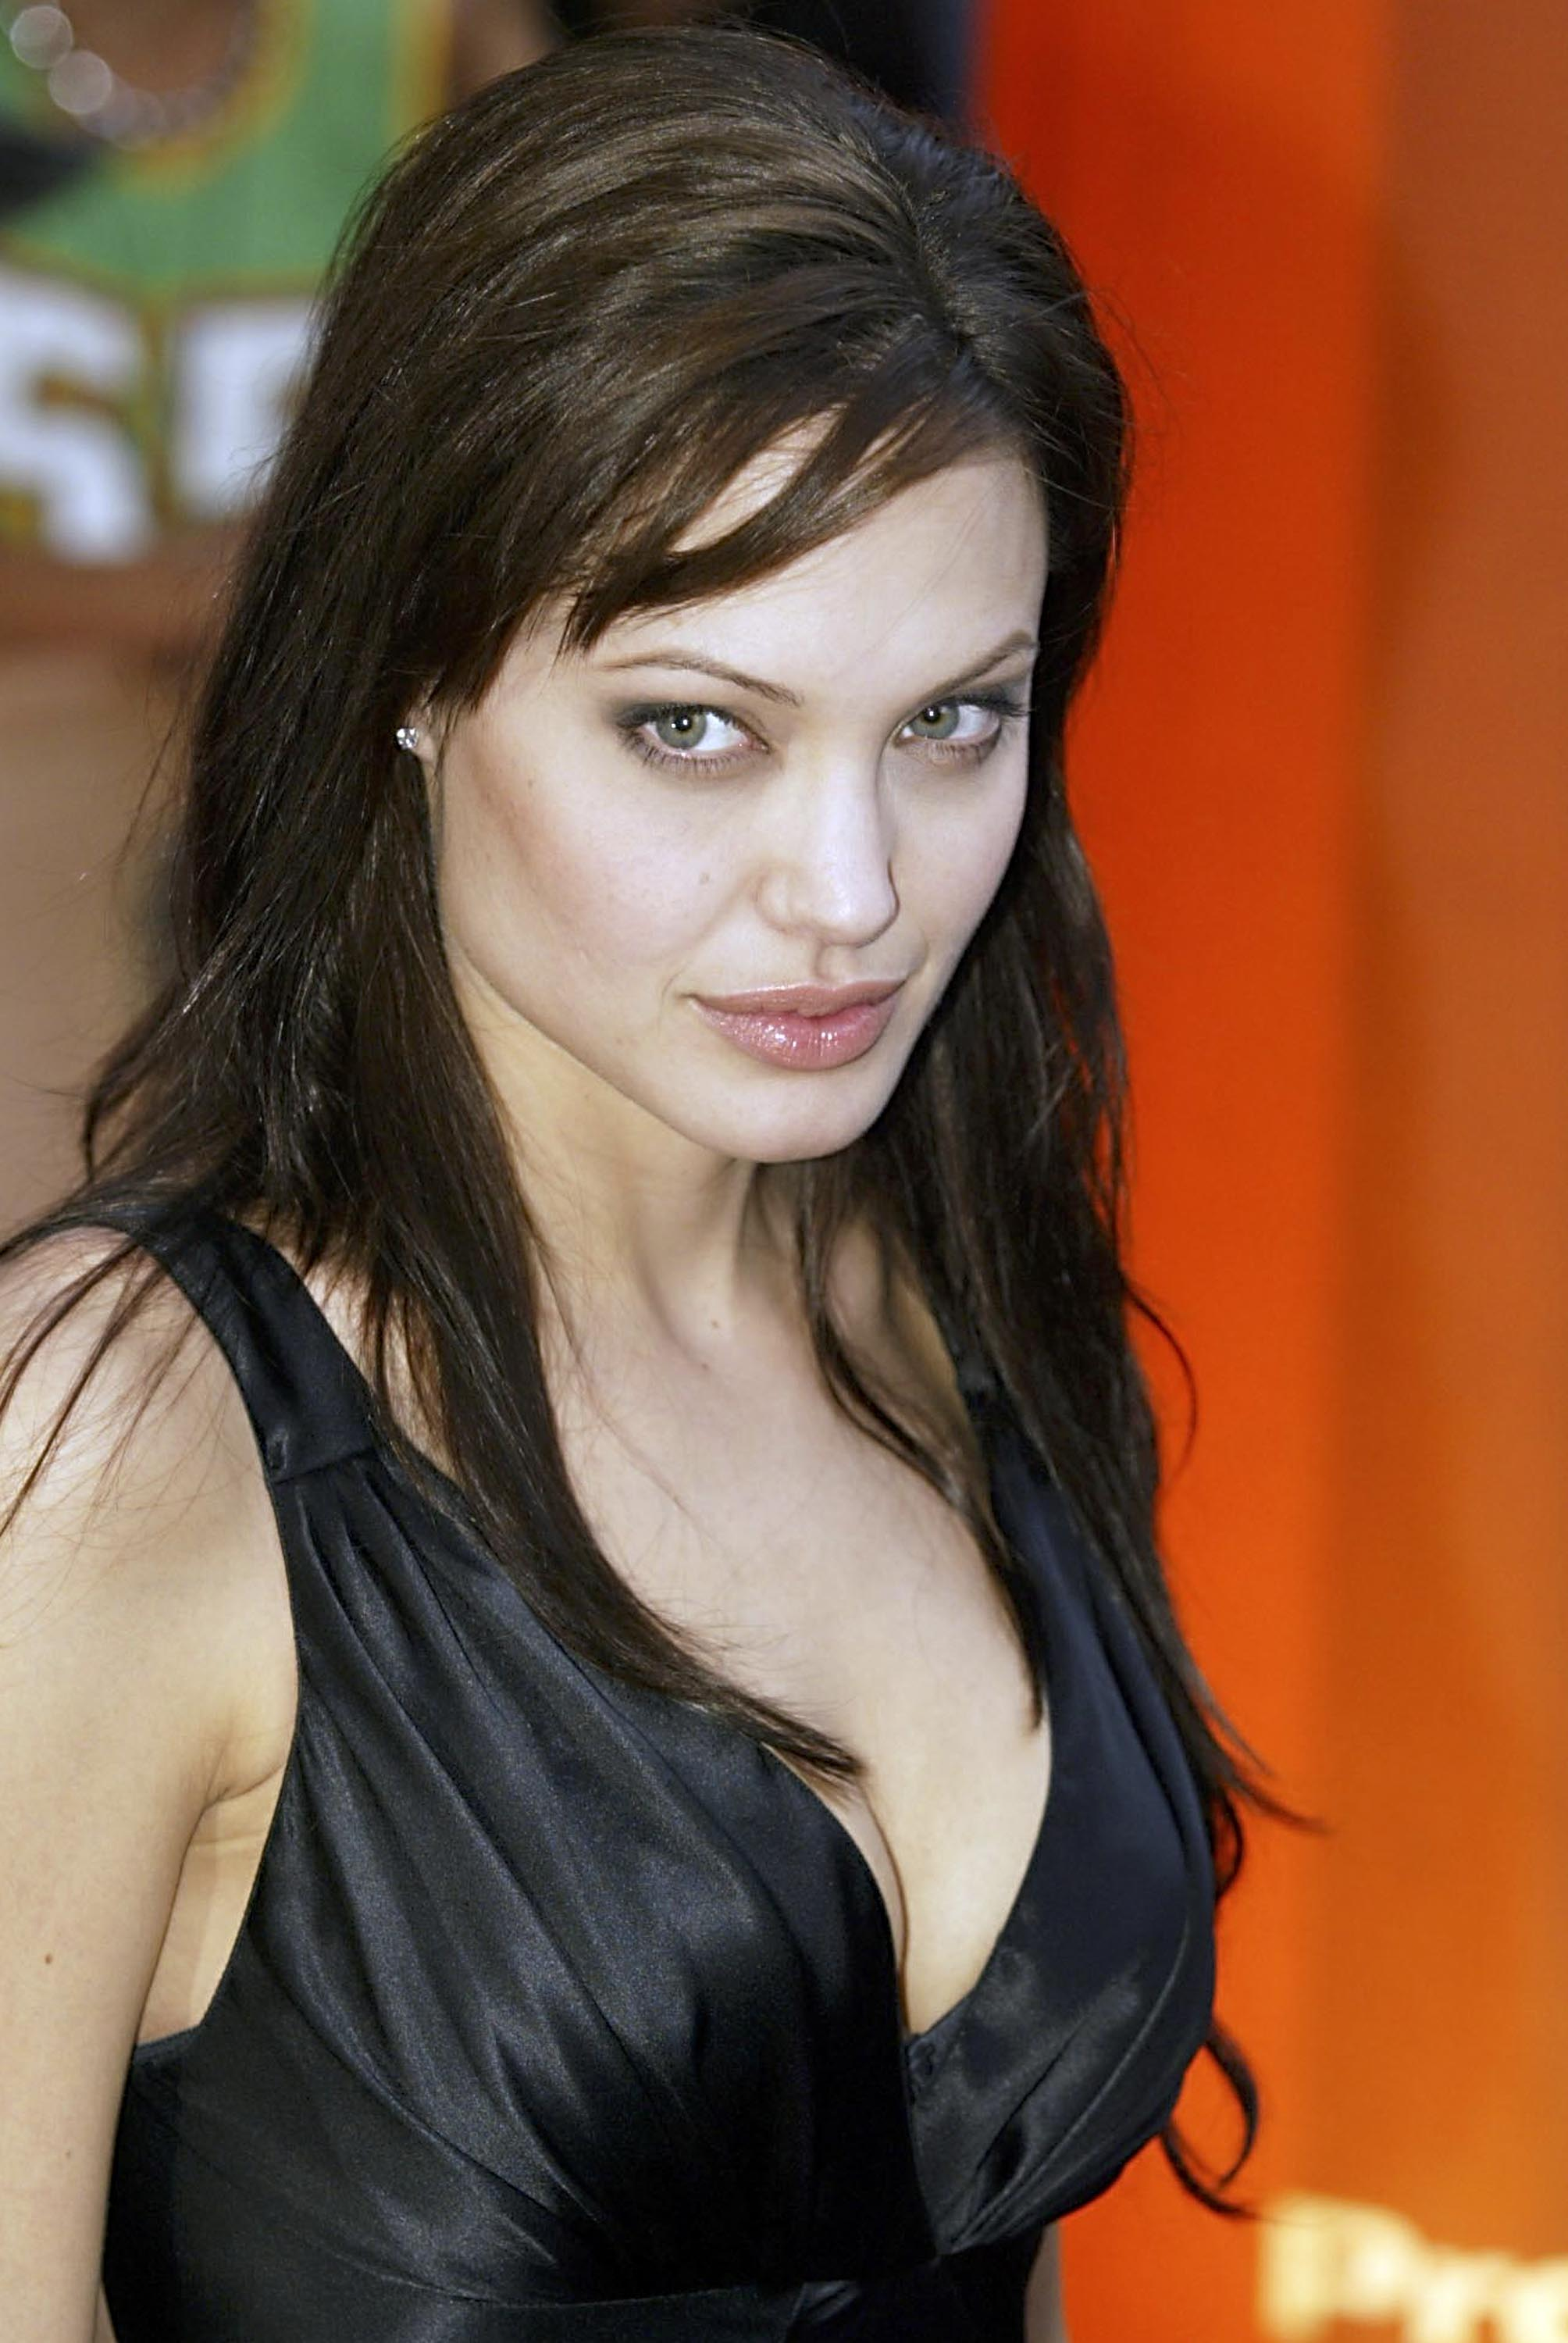 Angelina Jolie at an event for Lara Croft Tomb Raider: The Cradle of Life (2003)